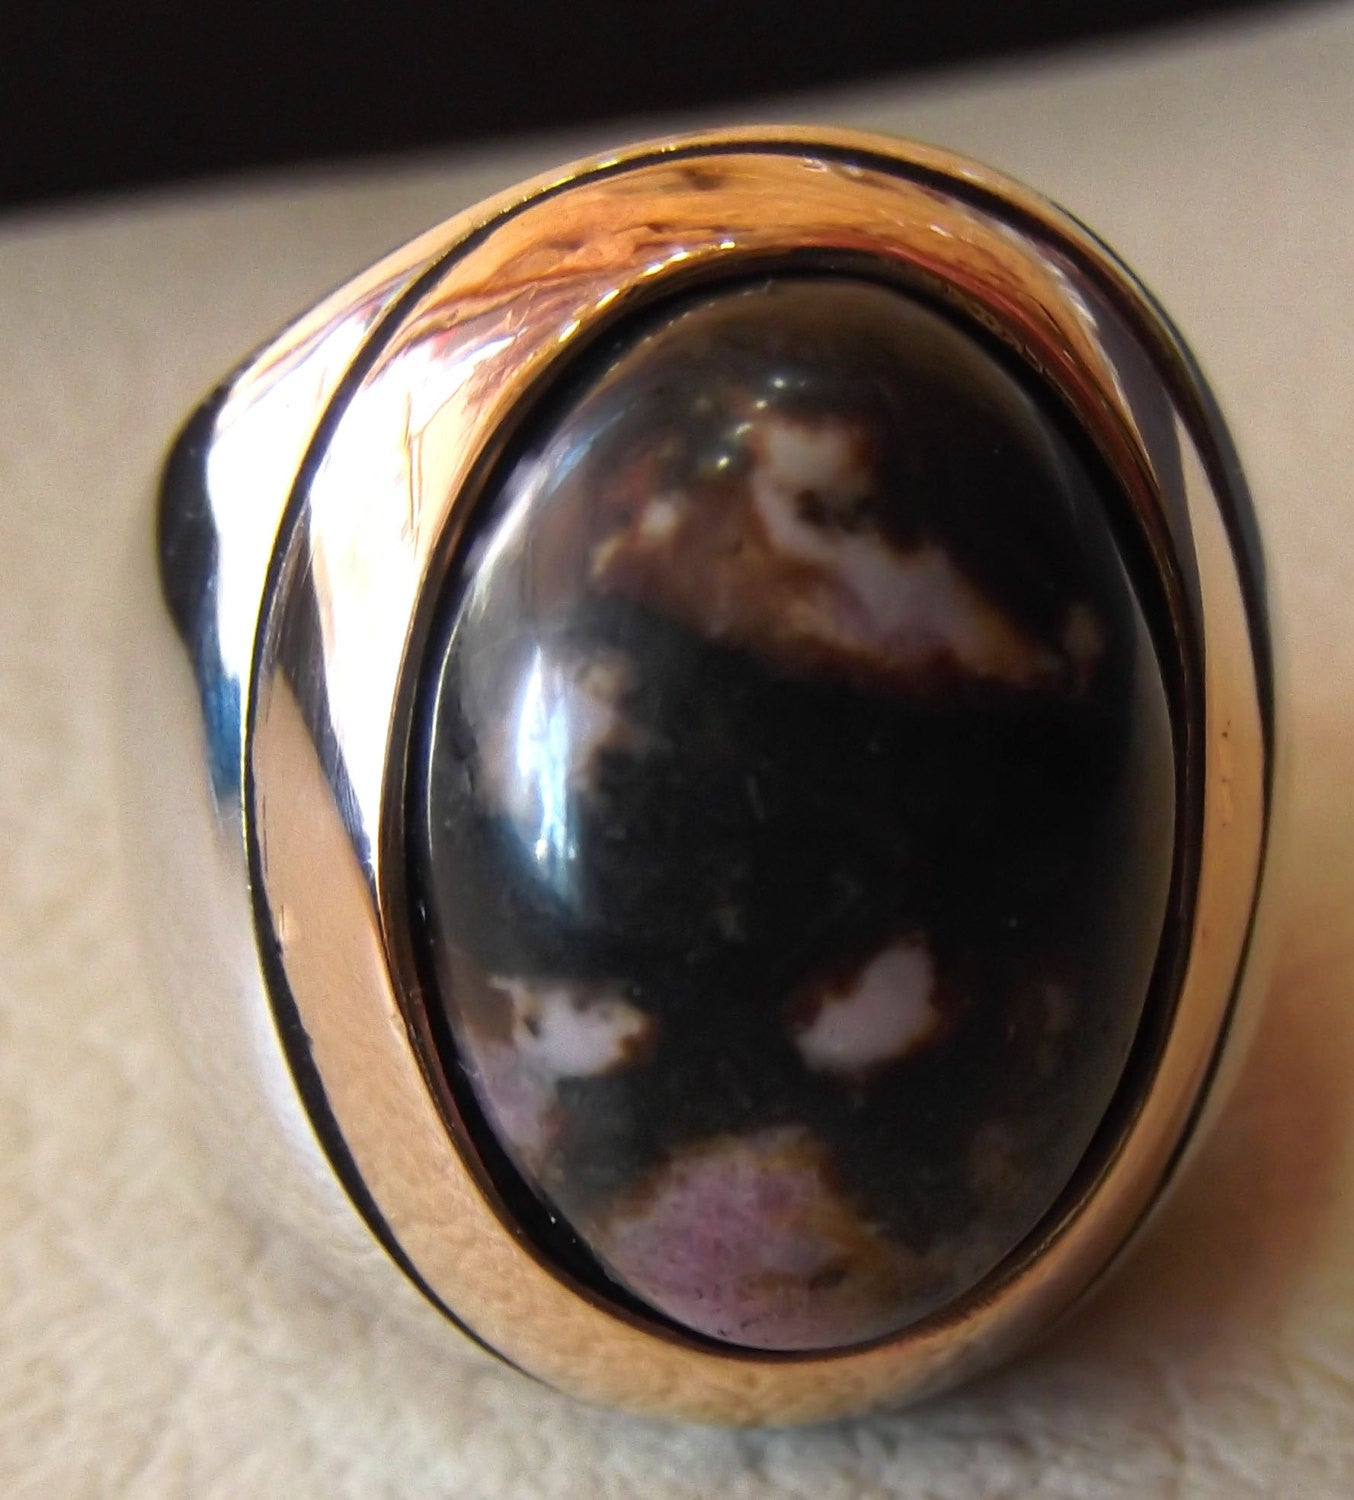 huge men ring rhodonite jasper oval sterling silver 925 natural stone semi precious pink and black gem in bronze frame two tone jewelry